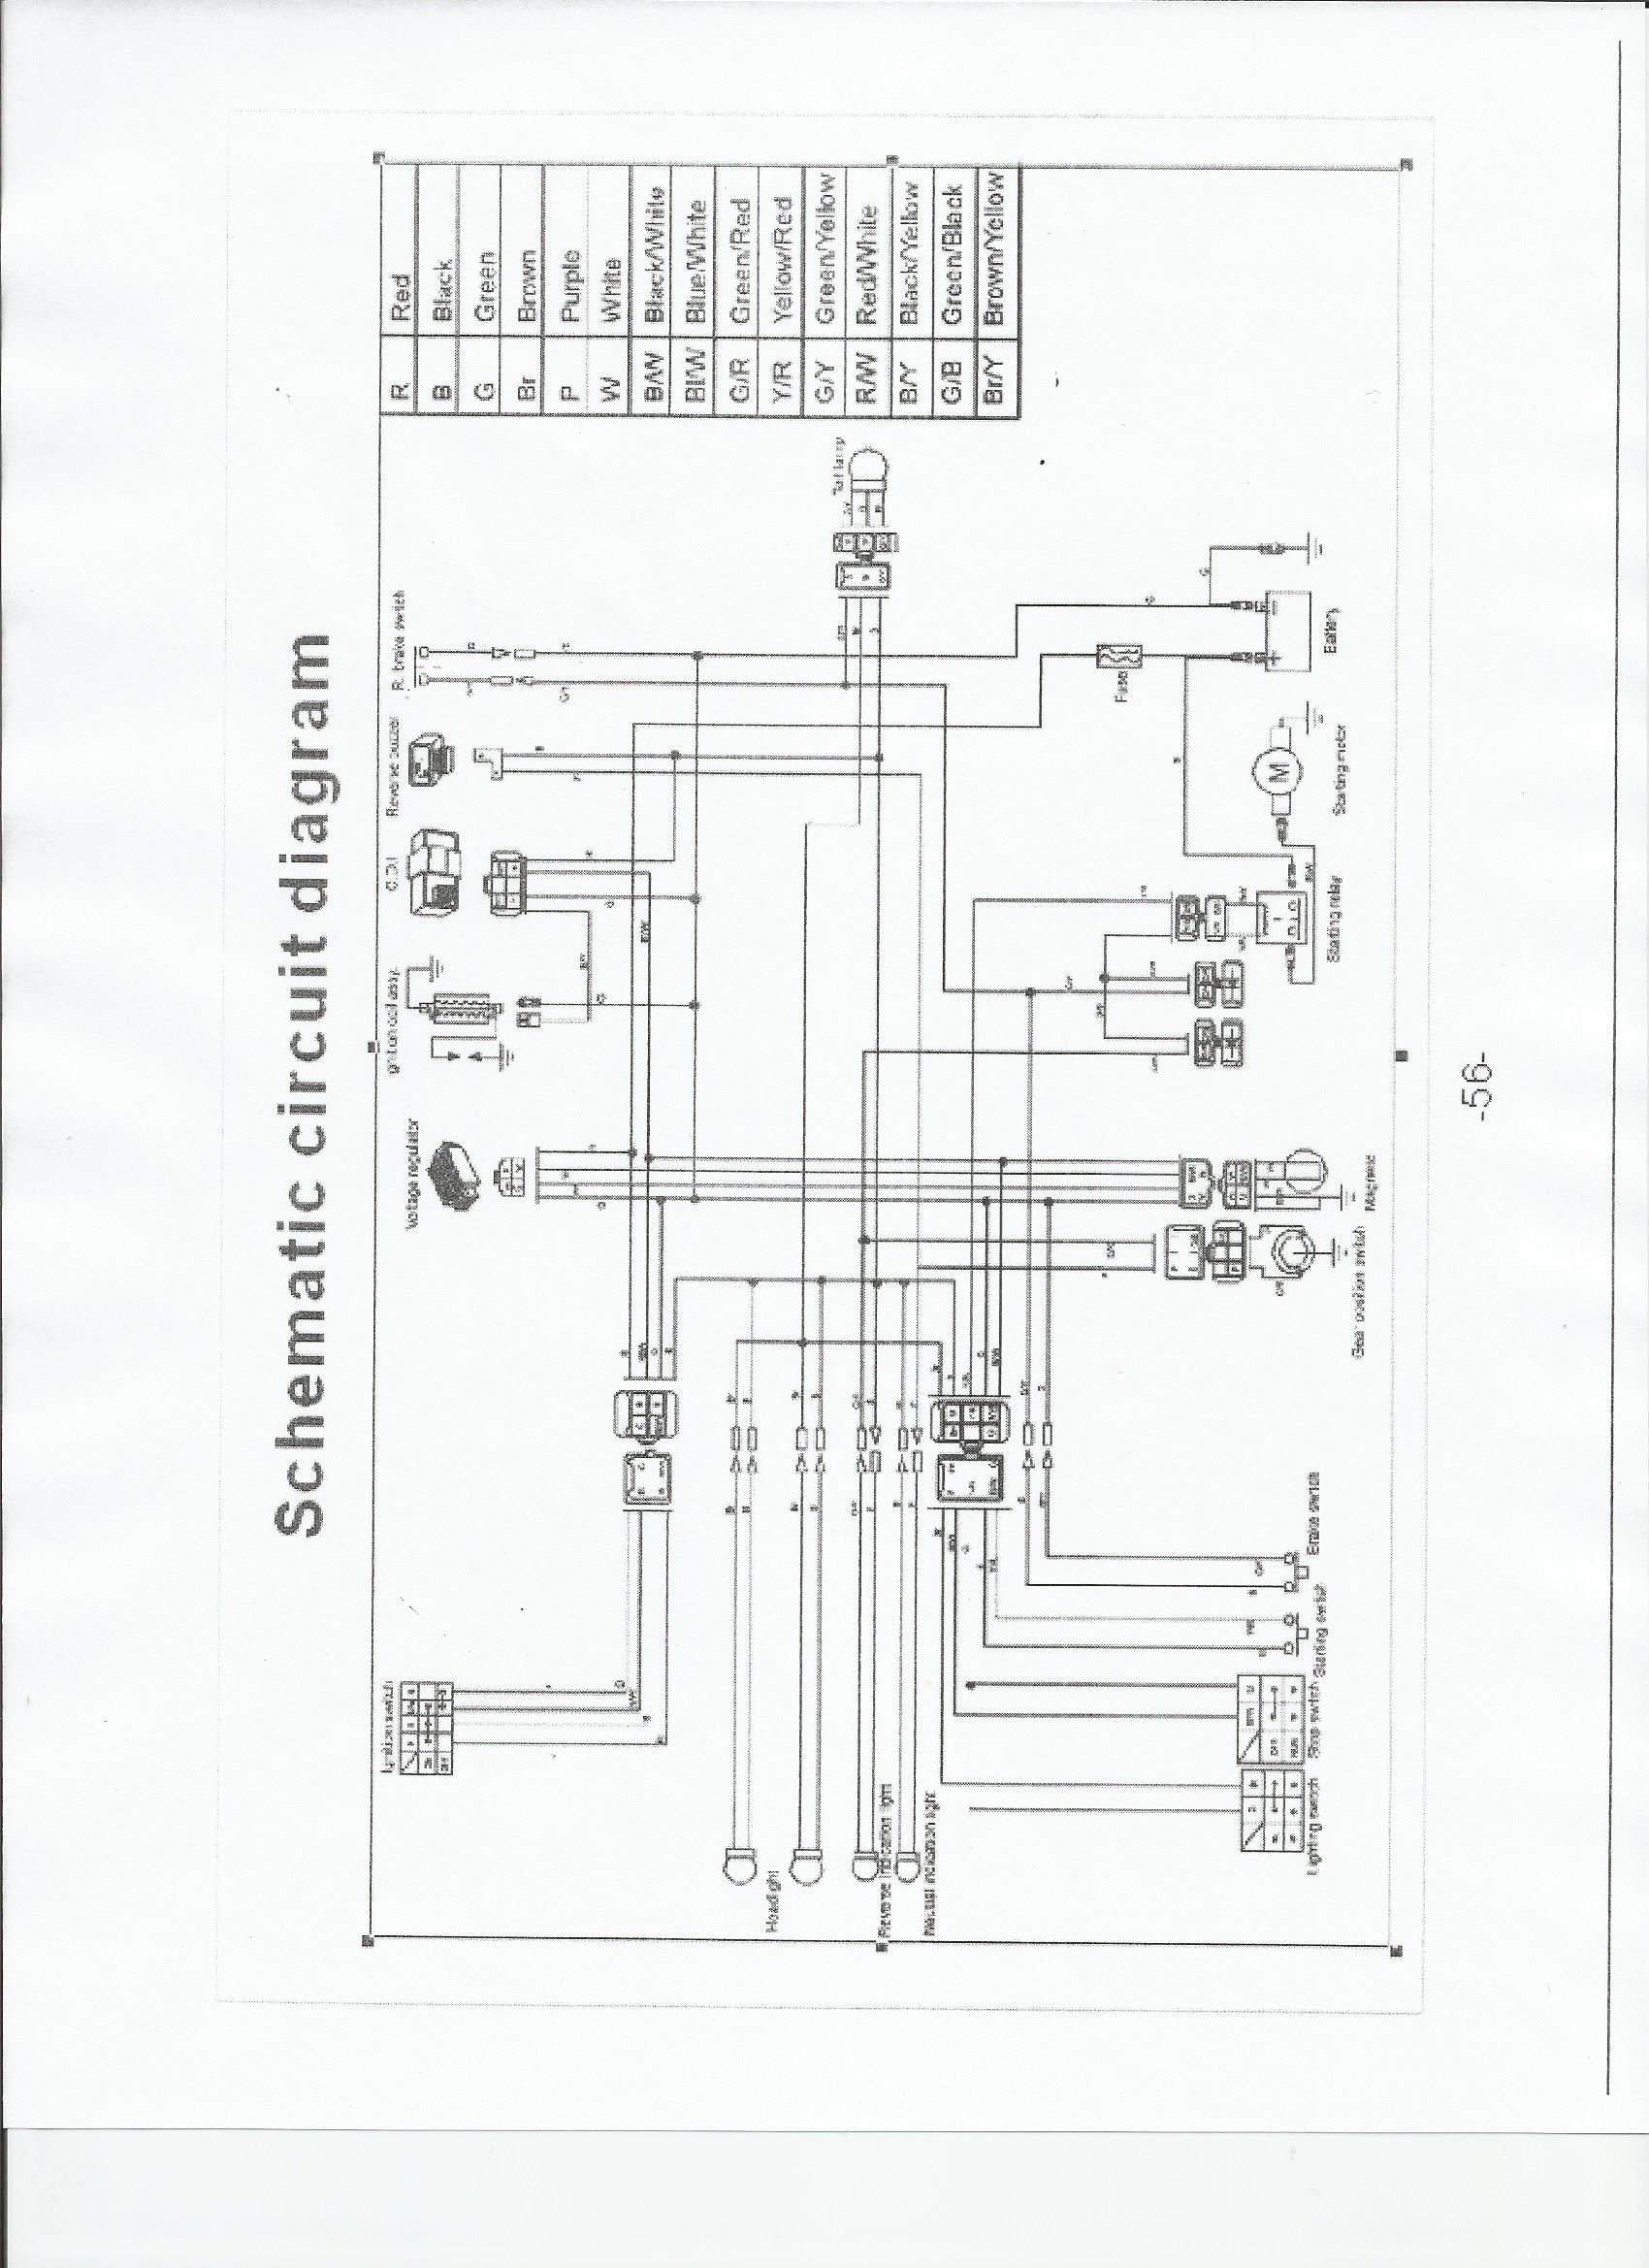 taotao mini and youth atv wiring schematic familygokarts support Tao Tao Ata 110 Wiring Diagram Tao Tao 50 Scooter Wiring Diagram